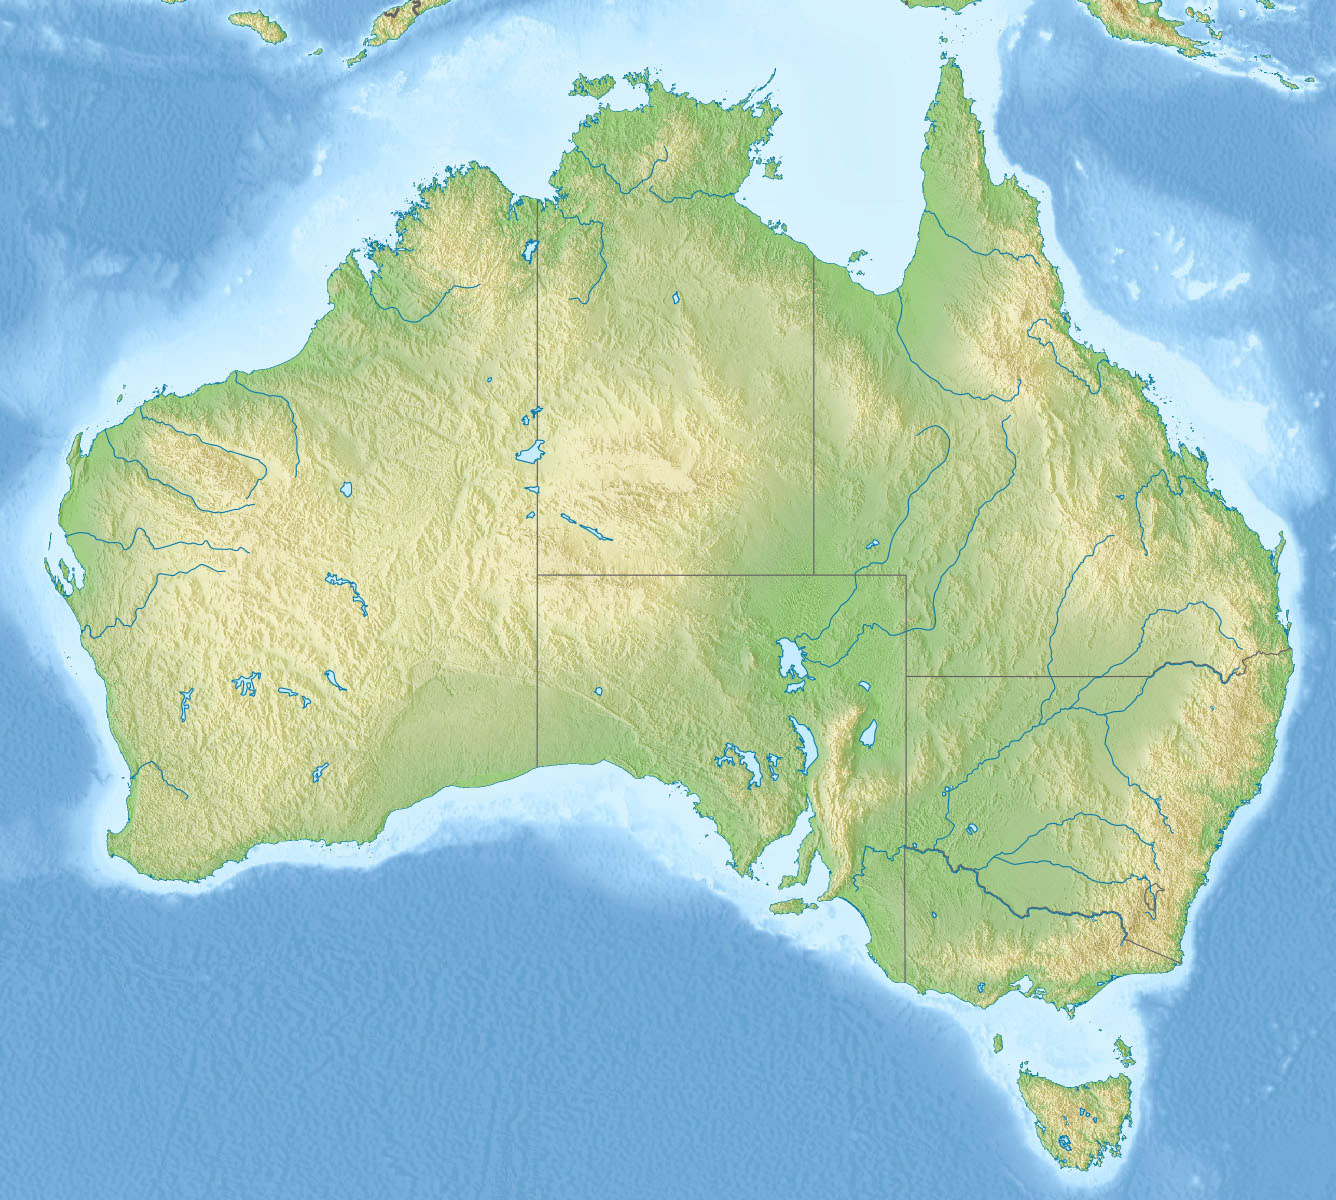 Large Map Of Australia.Large Detailed Relief Map Of Australia Australia Large Detailed